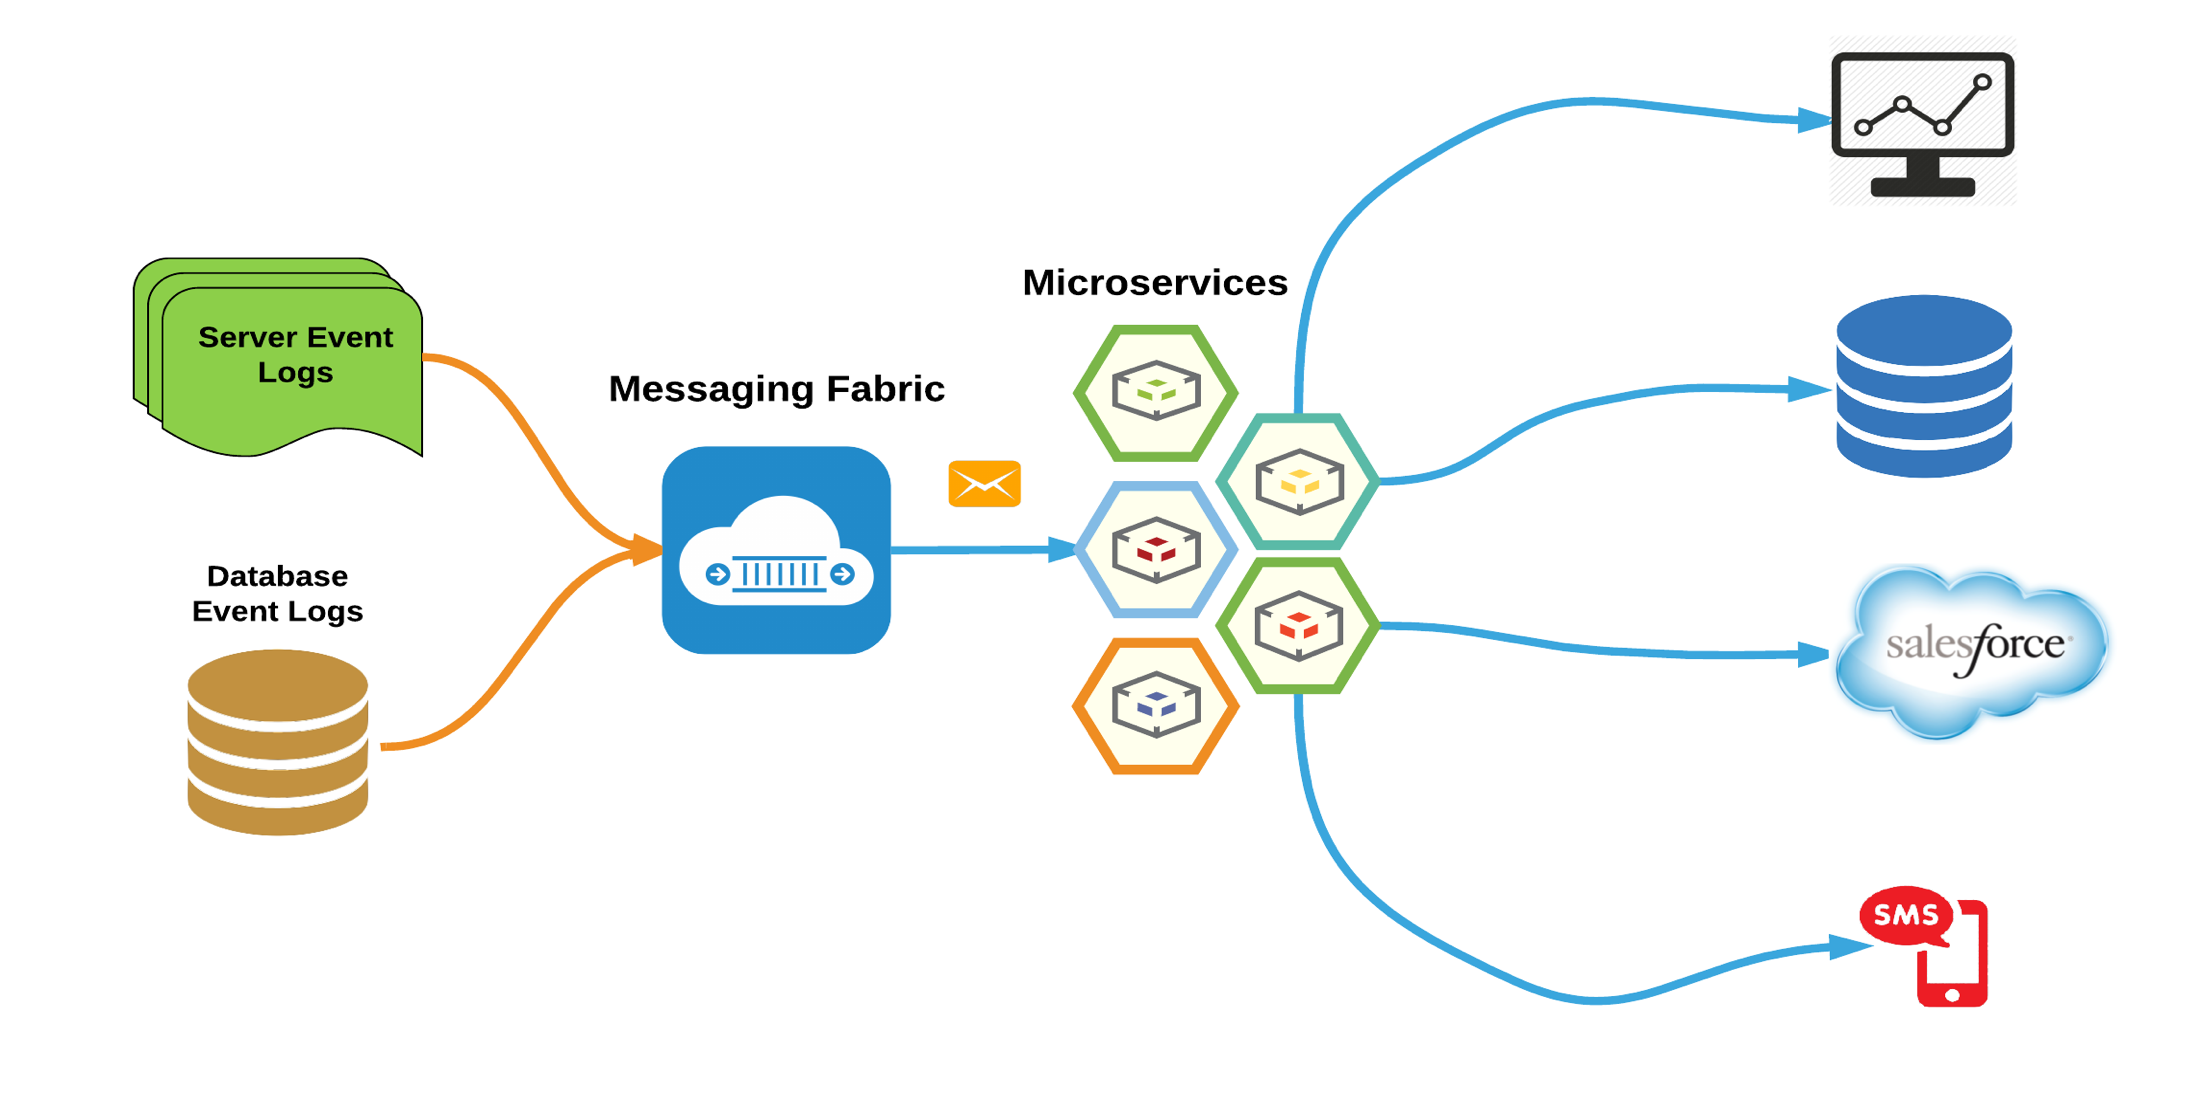 microservices approach to processing system logs into real time actionable events